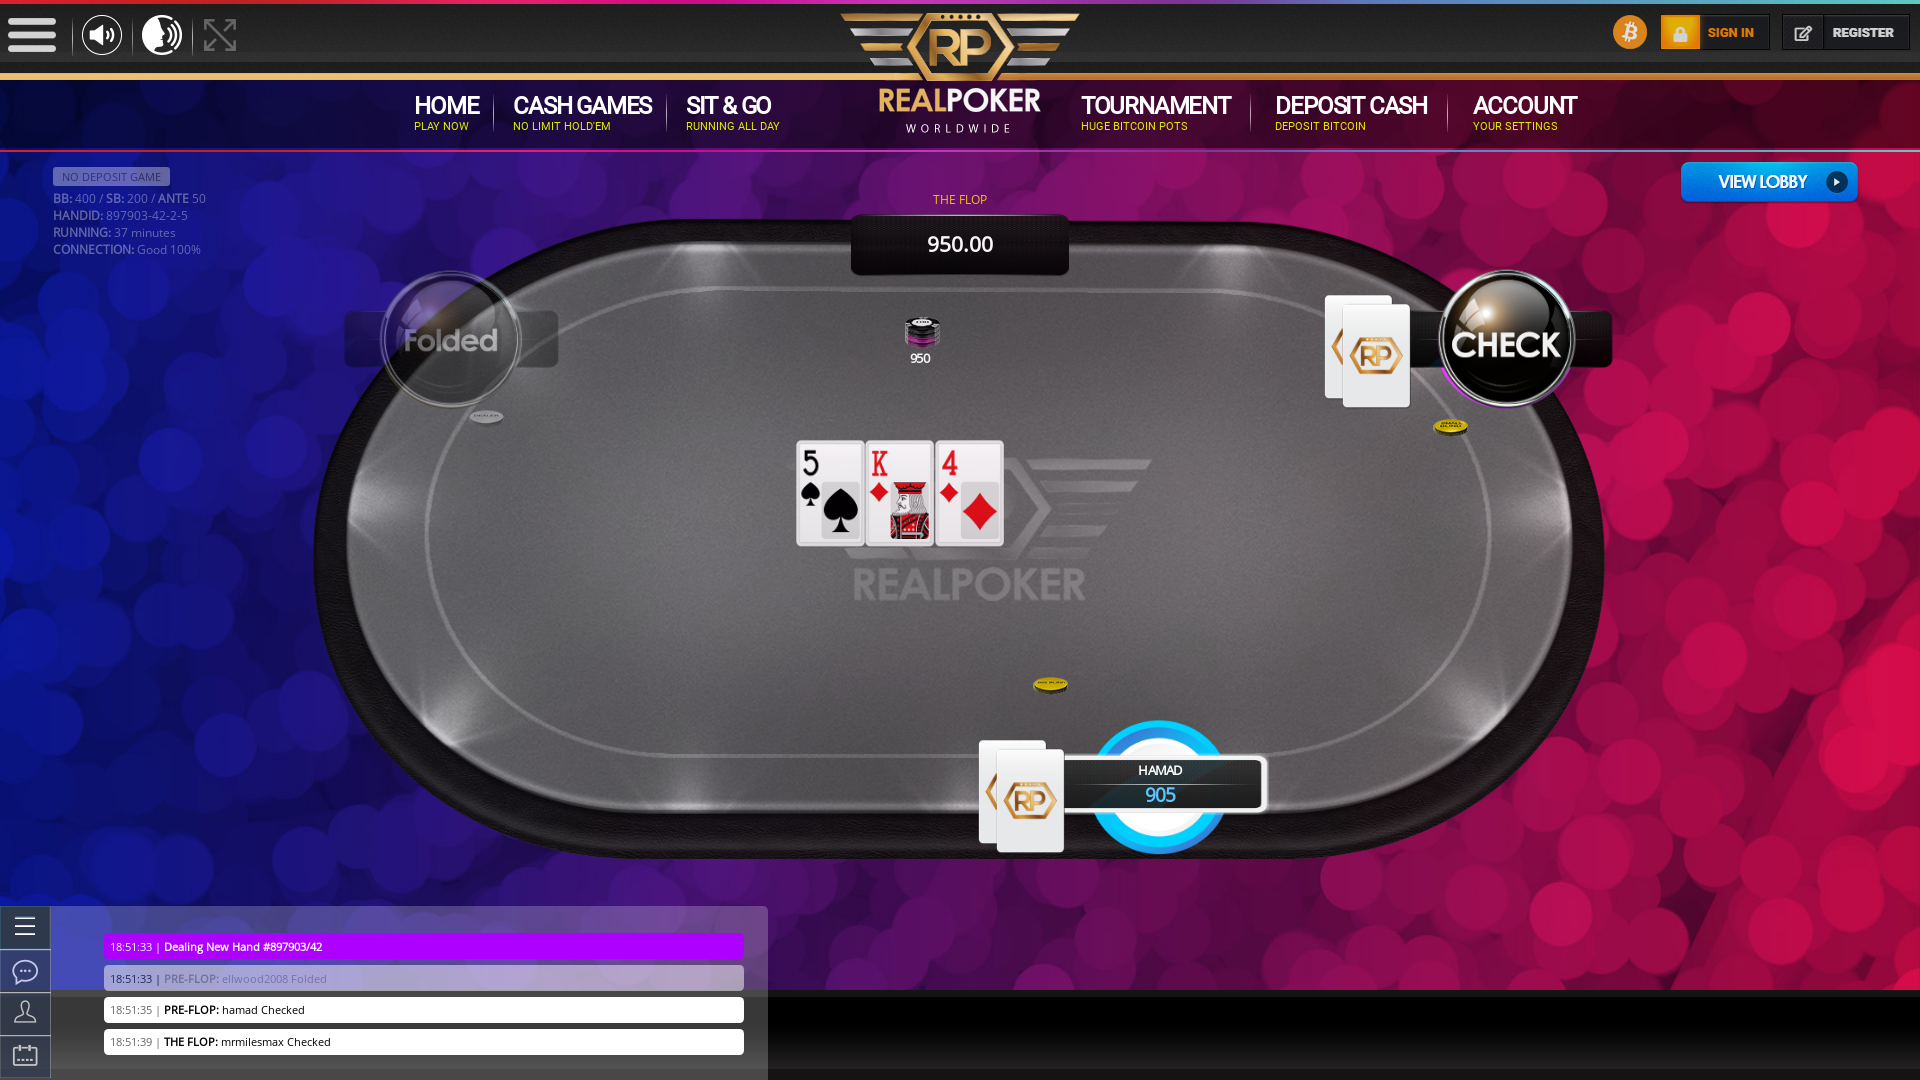 Mexico online poker game on a 10 player table in the 37th minute